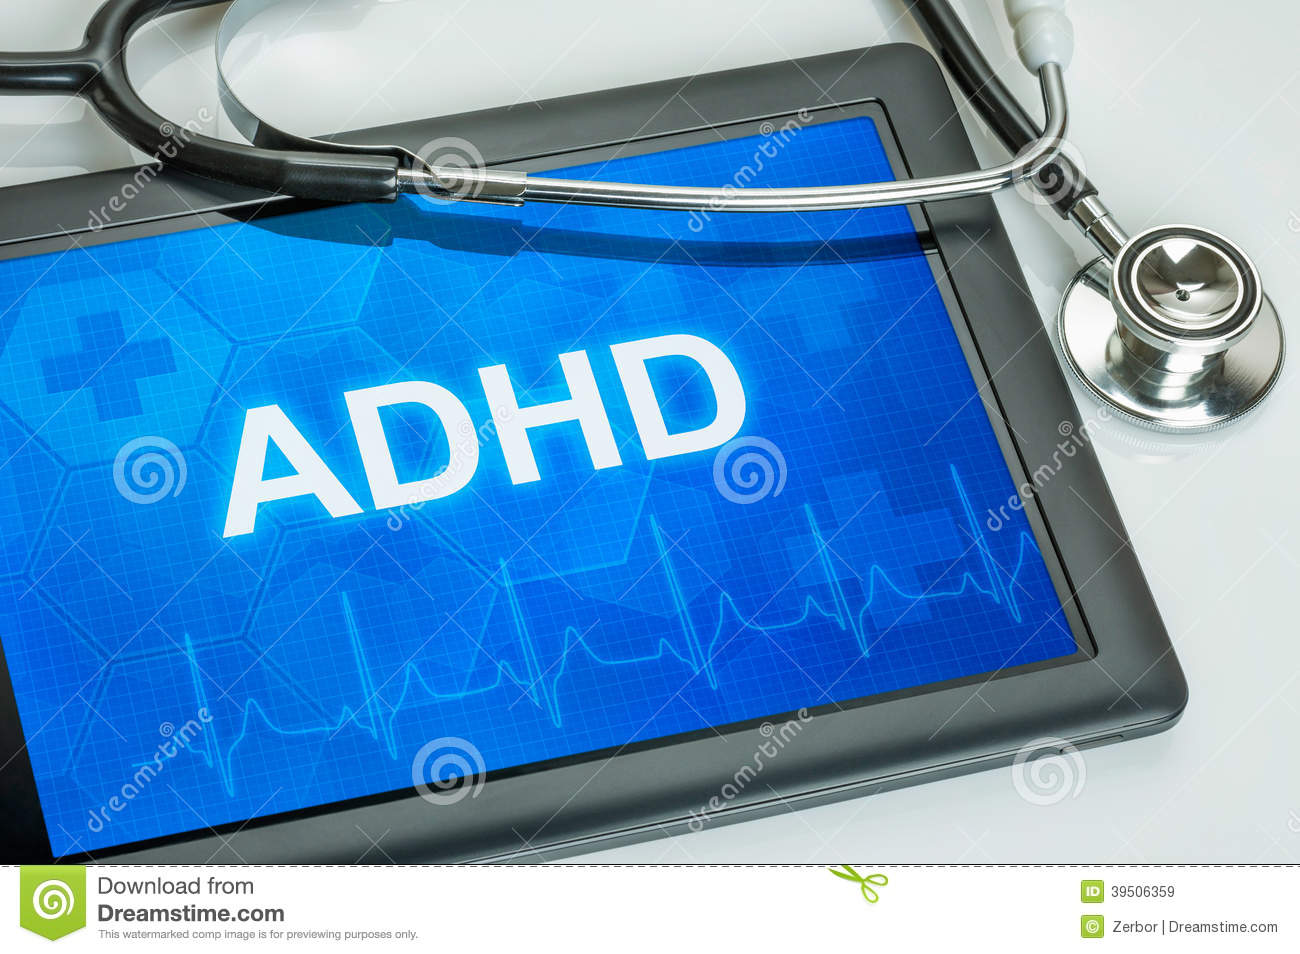 Tablet with the diagnosis adhd